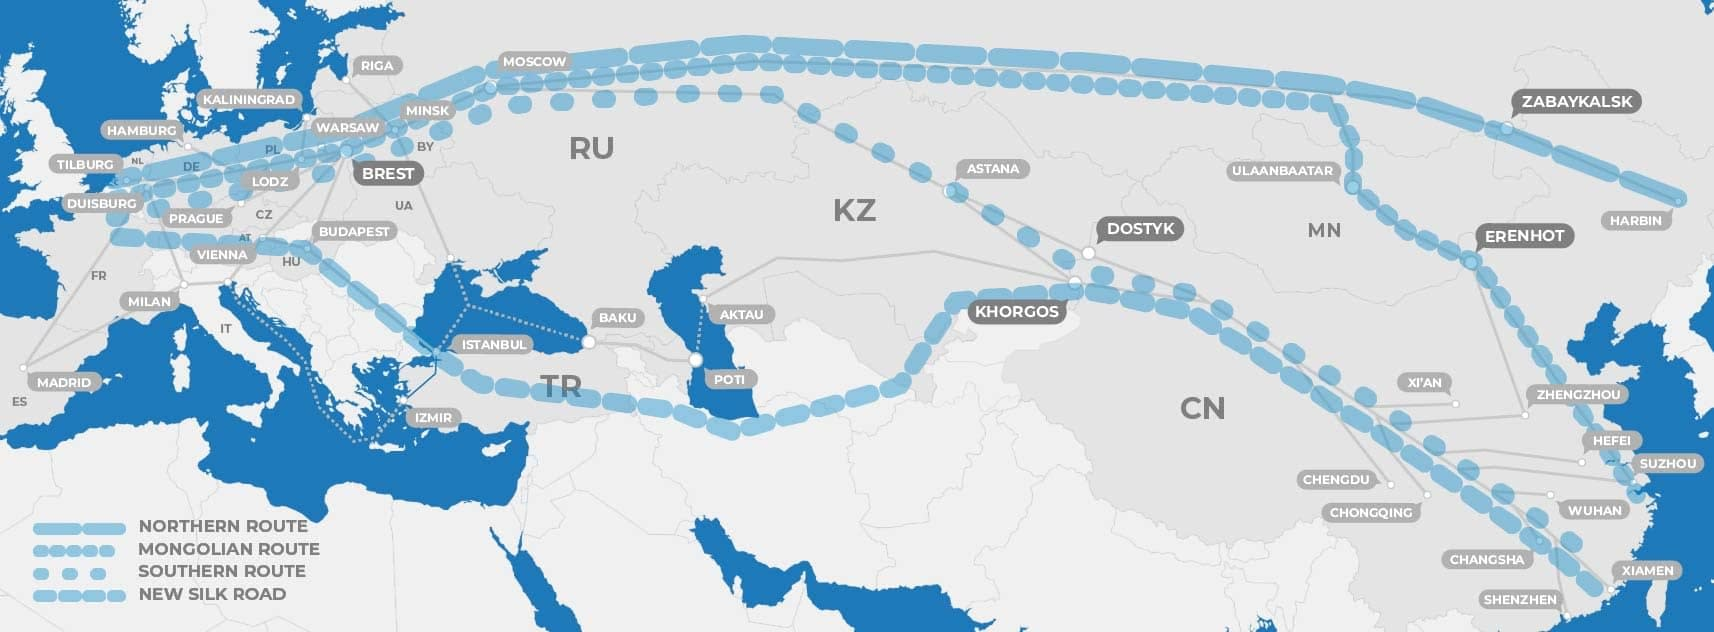 Map displaying four trans eurasian railway routes between China and Europe